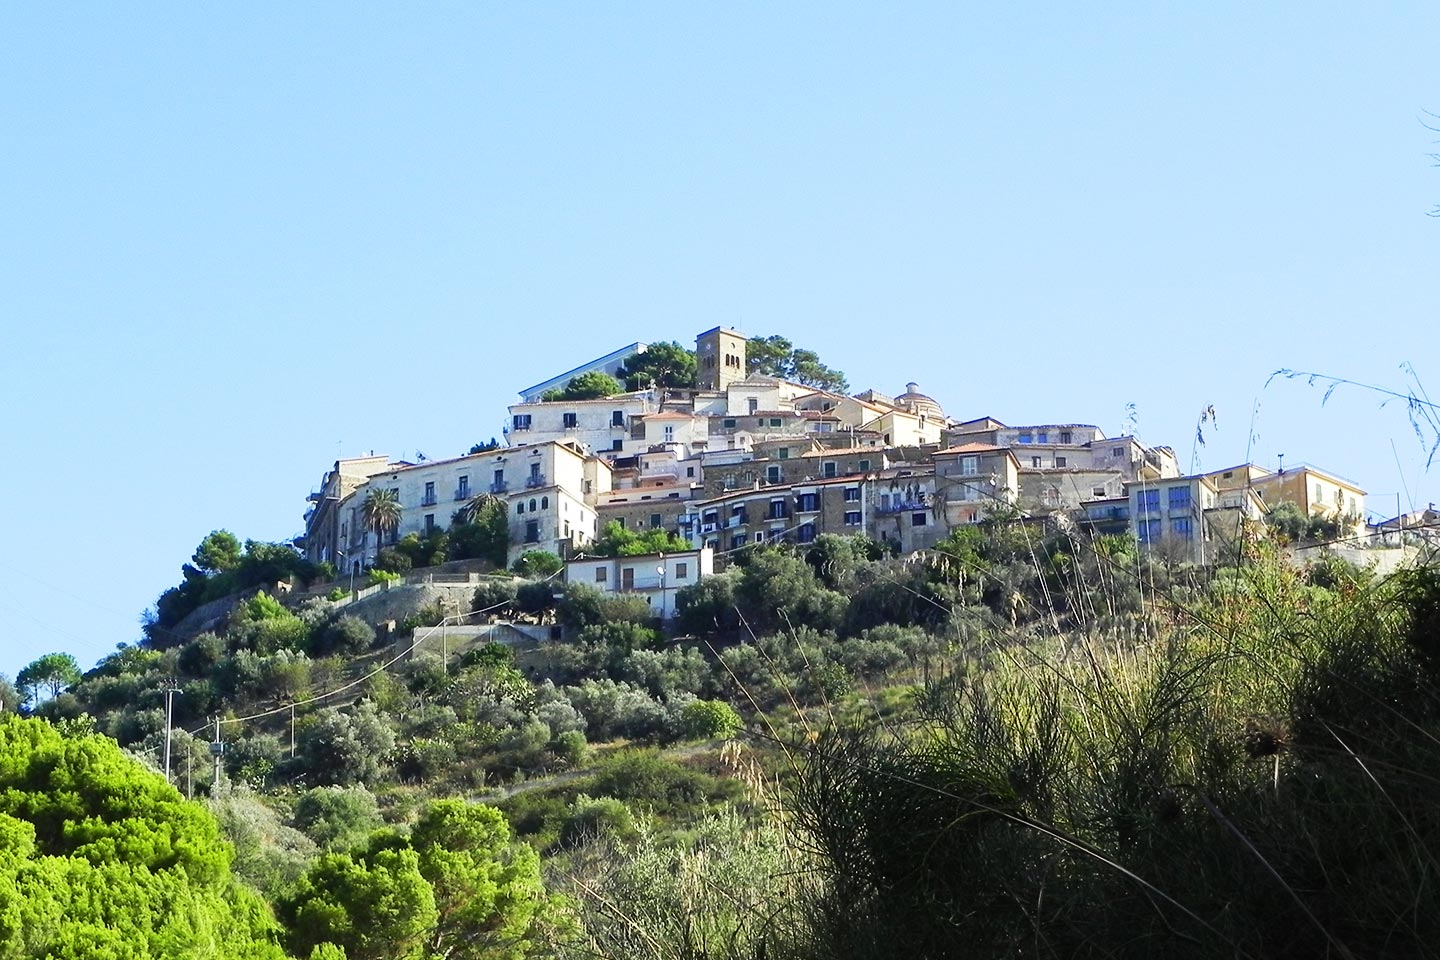 Panorama von Castellabate